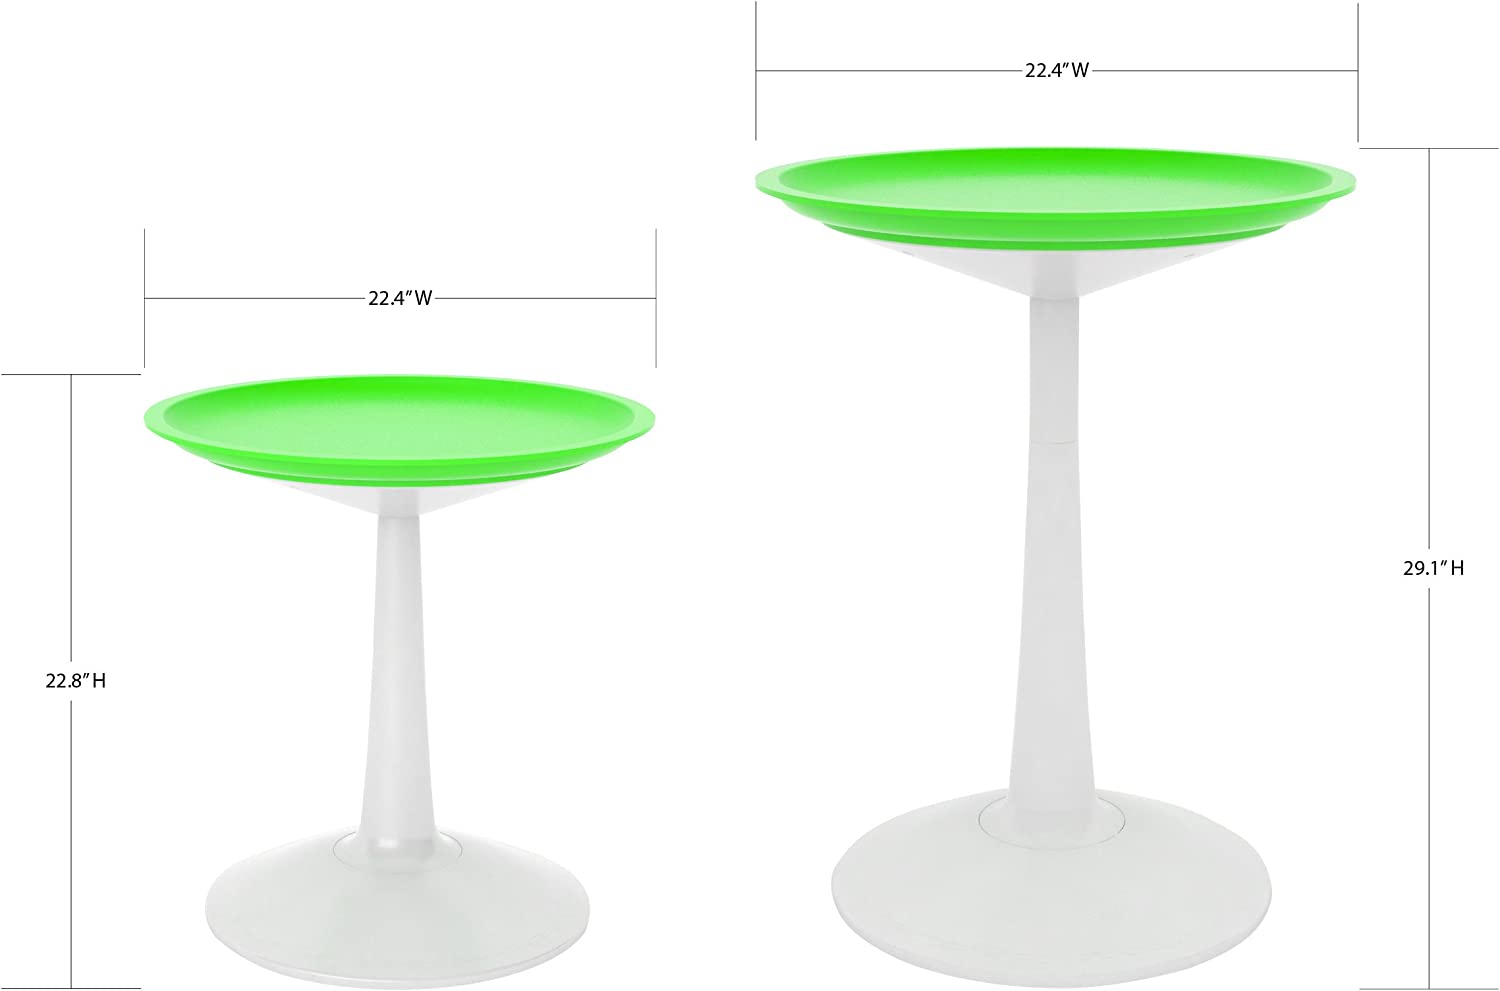 Lagoon Furniture Lagoon Sprout Round Side Table White